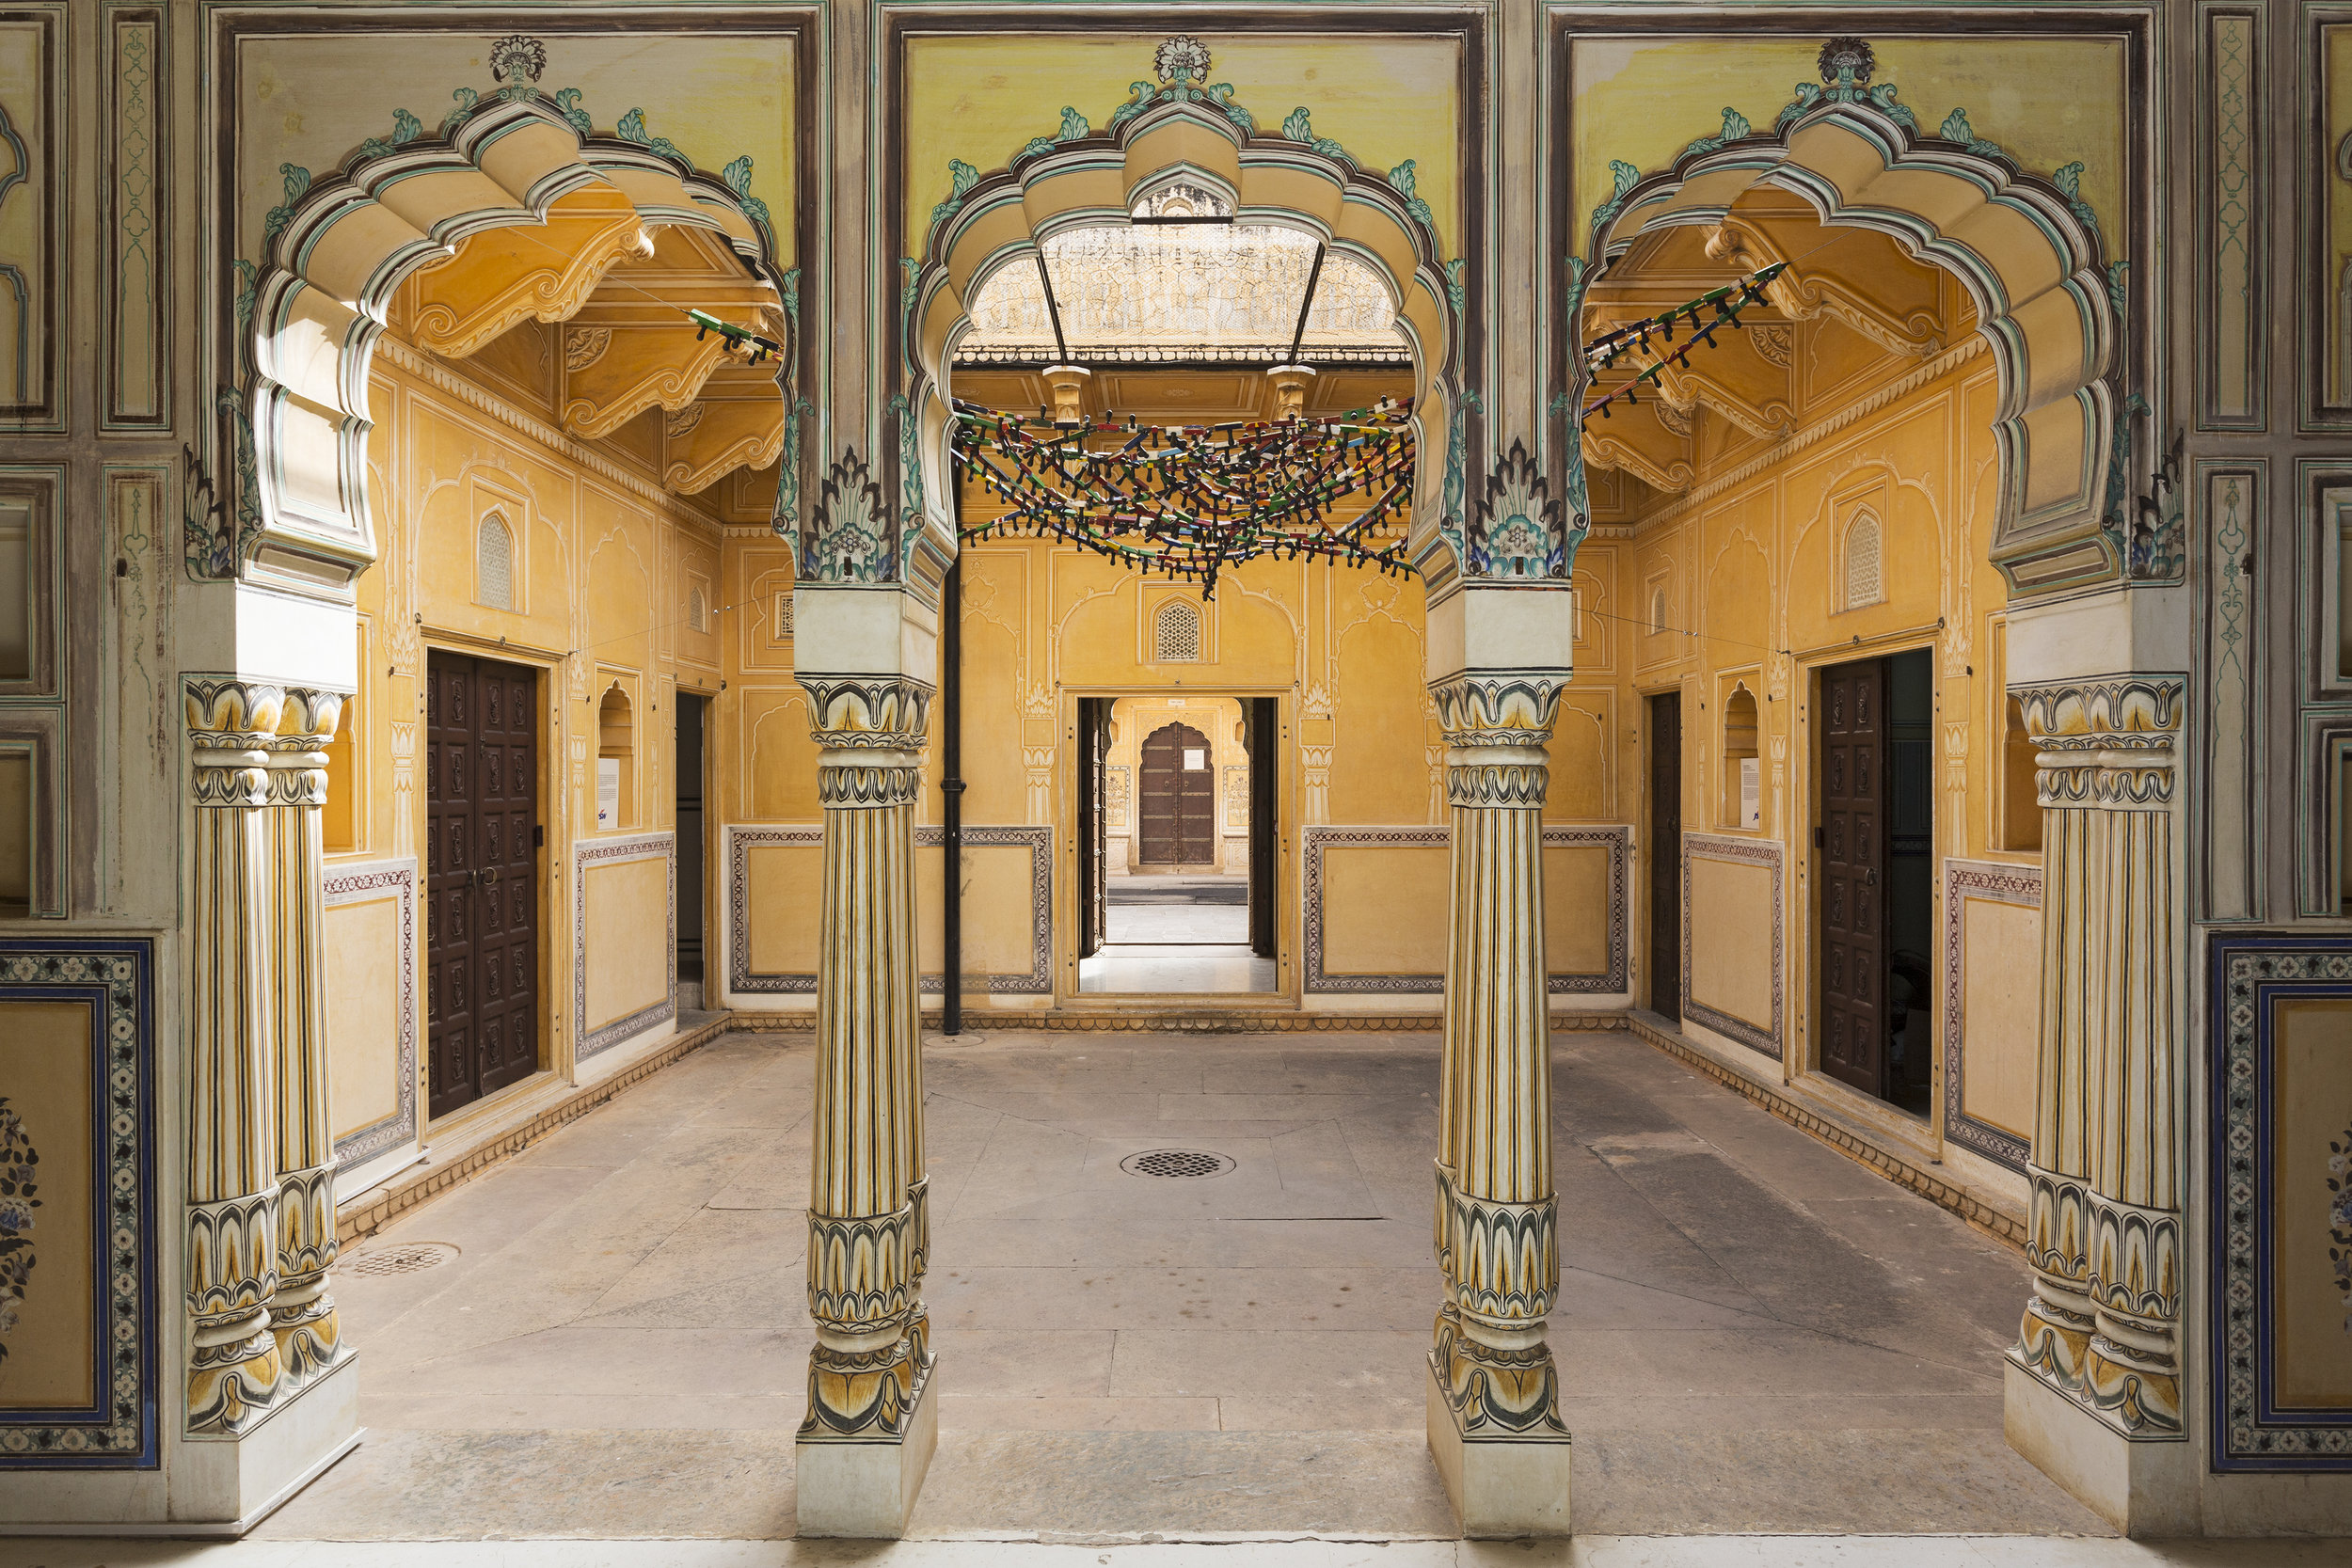 Back in the 1800s the palace was home to Maharaja Sawai Jai Singh and his wives. In this courtyard we see Reena Saini Kallat's work 'Untitled (cobweb)' overhead.